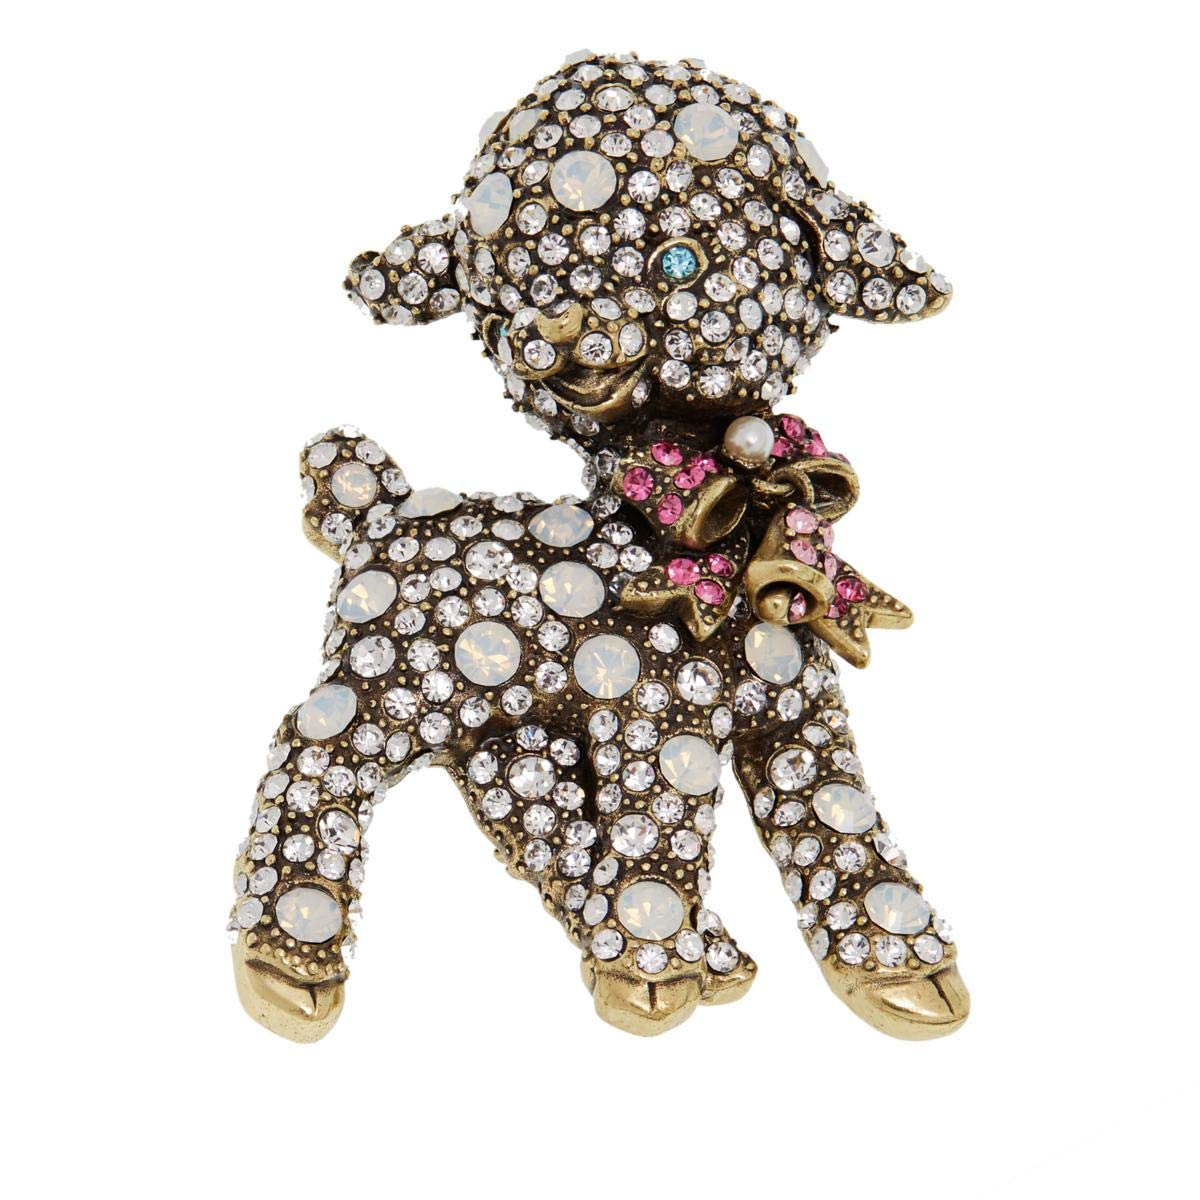 Heidi Daus Mairzy Doats Pavé Crystal Cutest Little Thing You'll See, Grab IT!!!